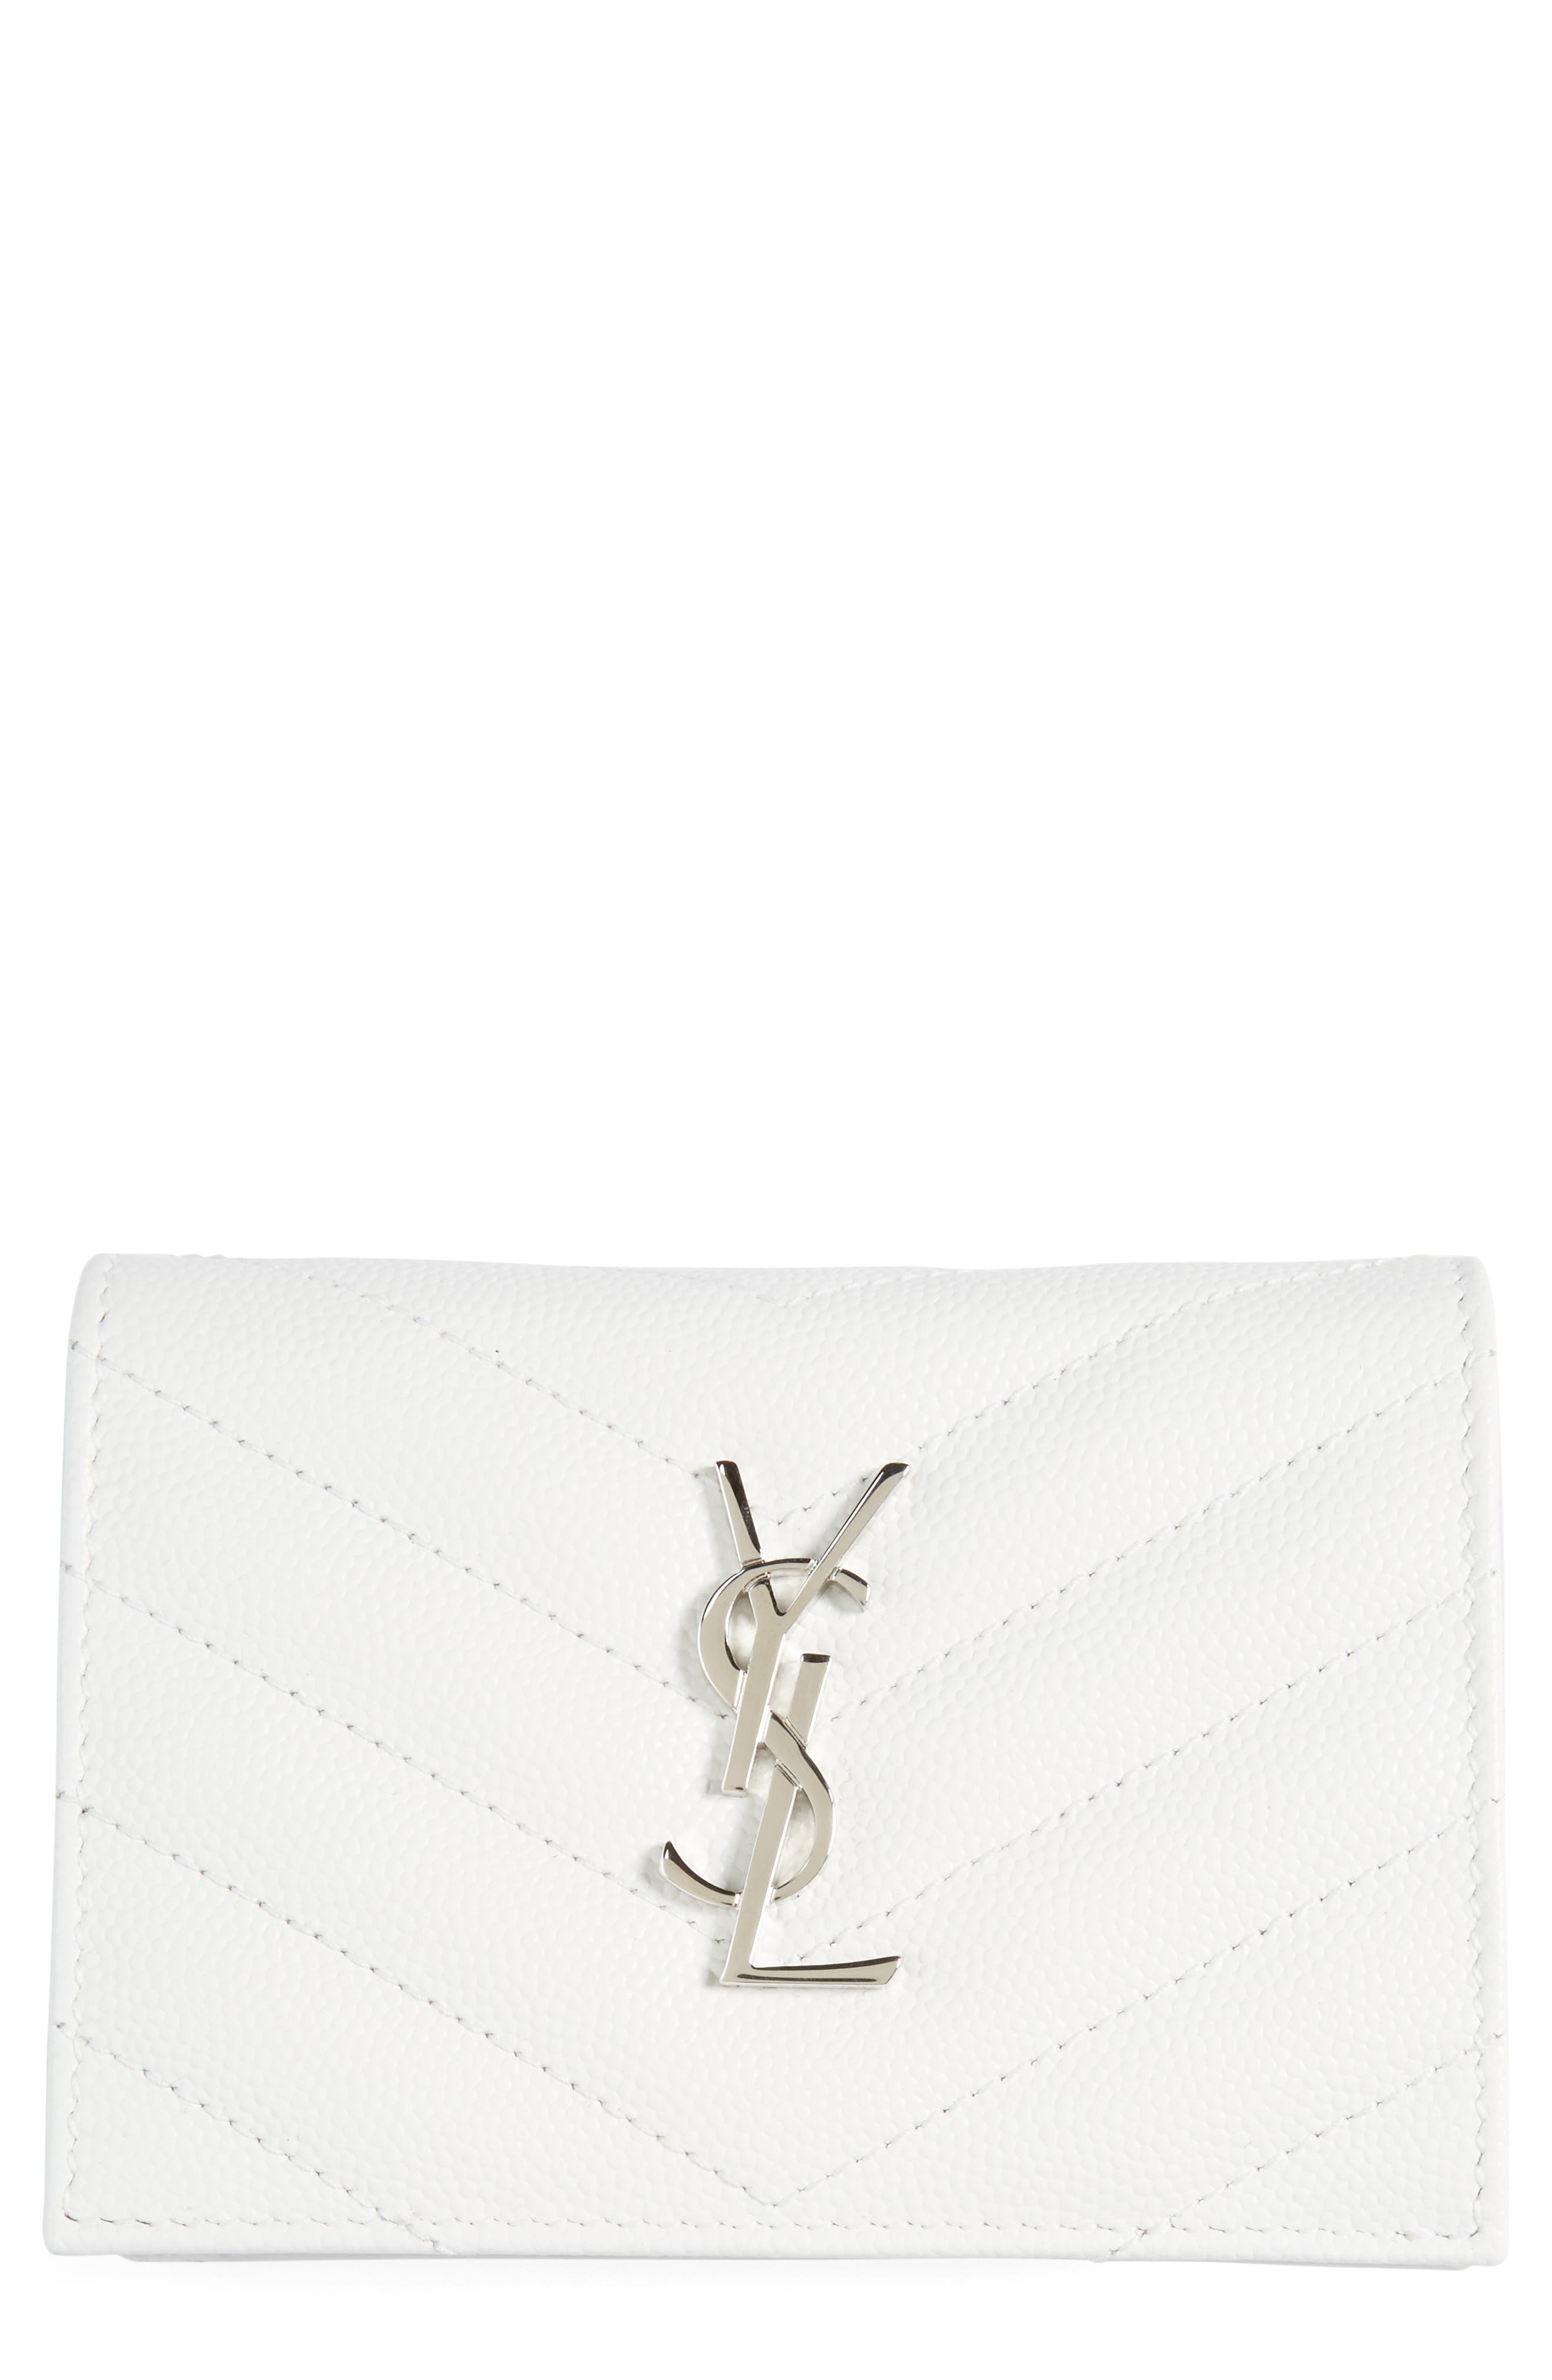 Alternate Image 1 Selected - Saint Laurent Textured Leather Card Case